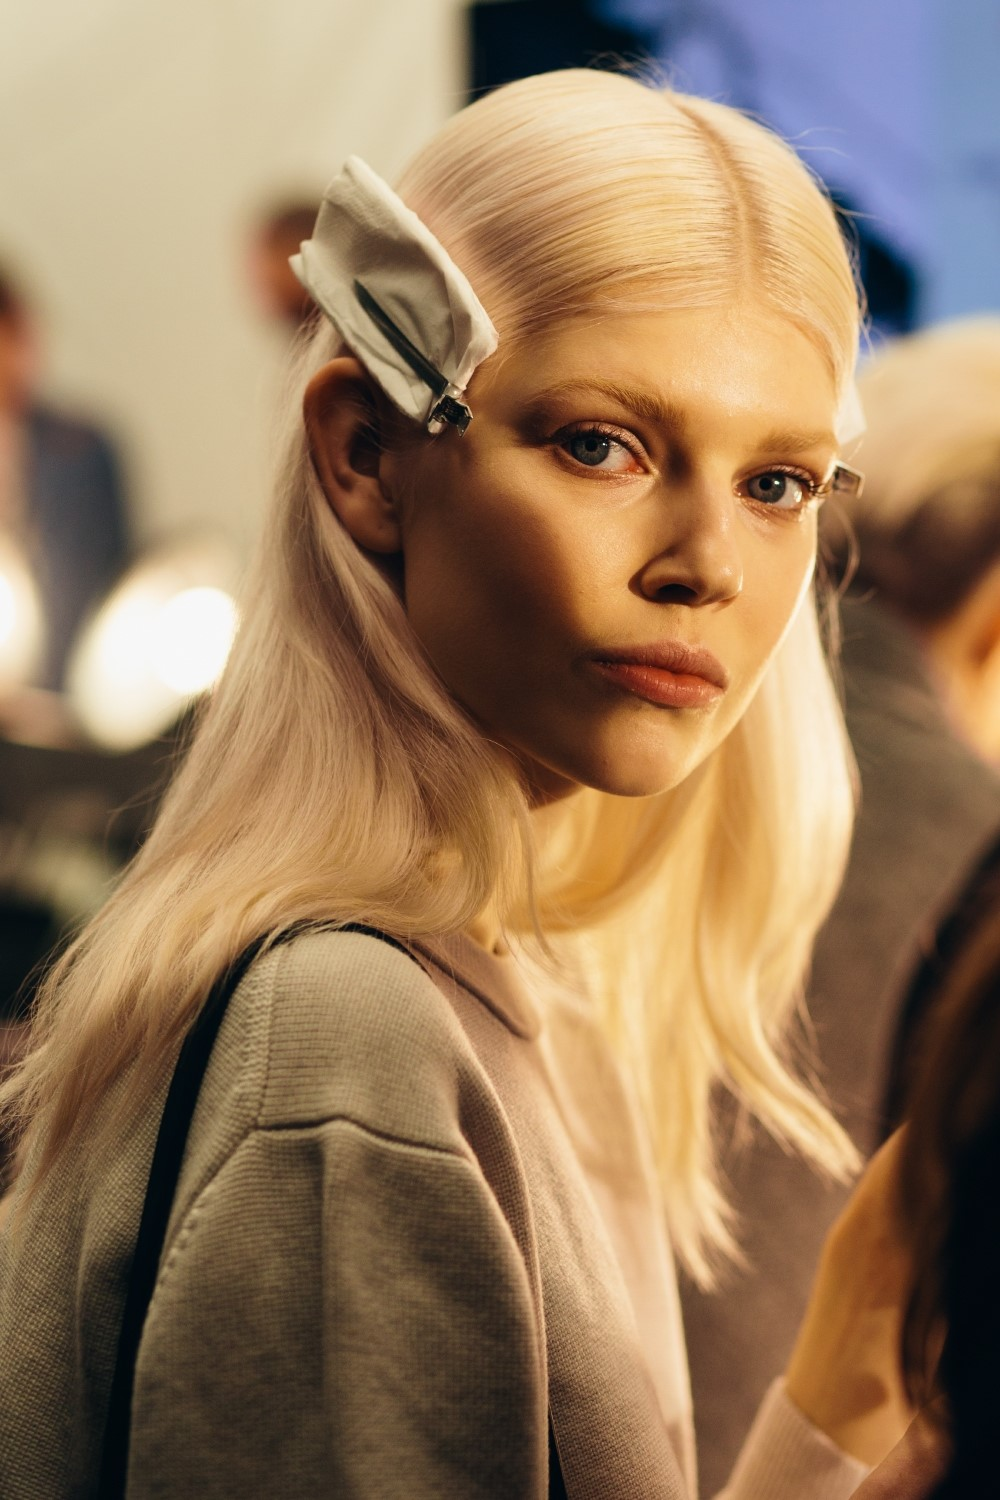 Ola Rudnicka backstage at Tommy Hilfiger A/W14